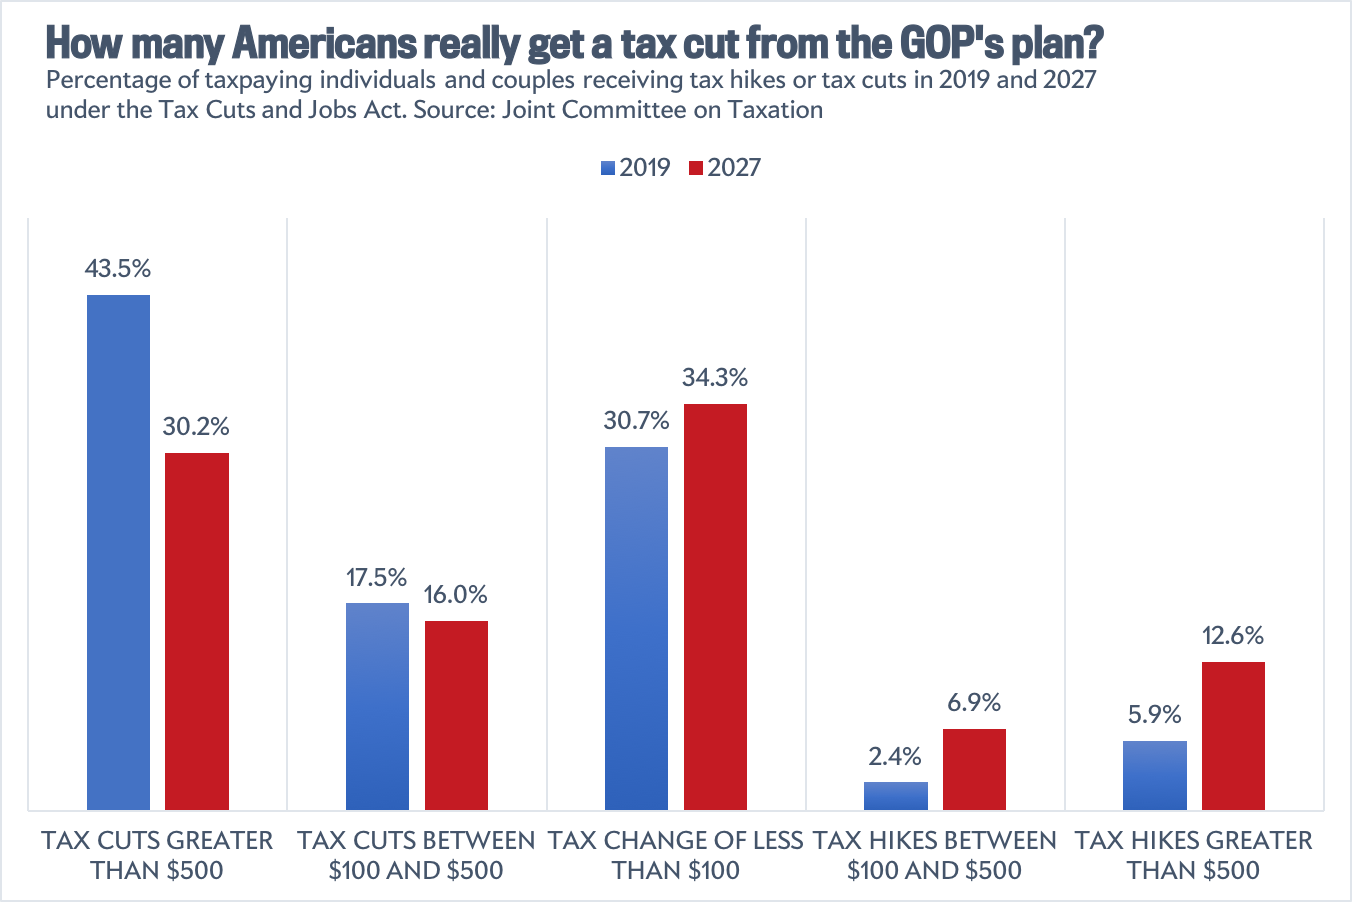 How many Americans really get a tax cut from the GOP's plan?